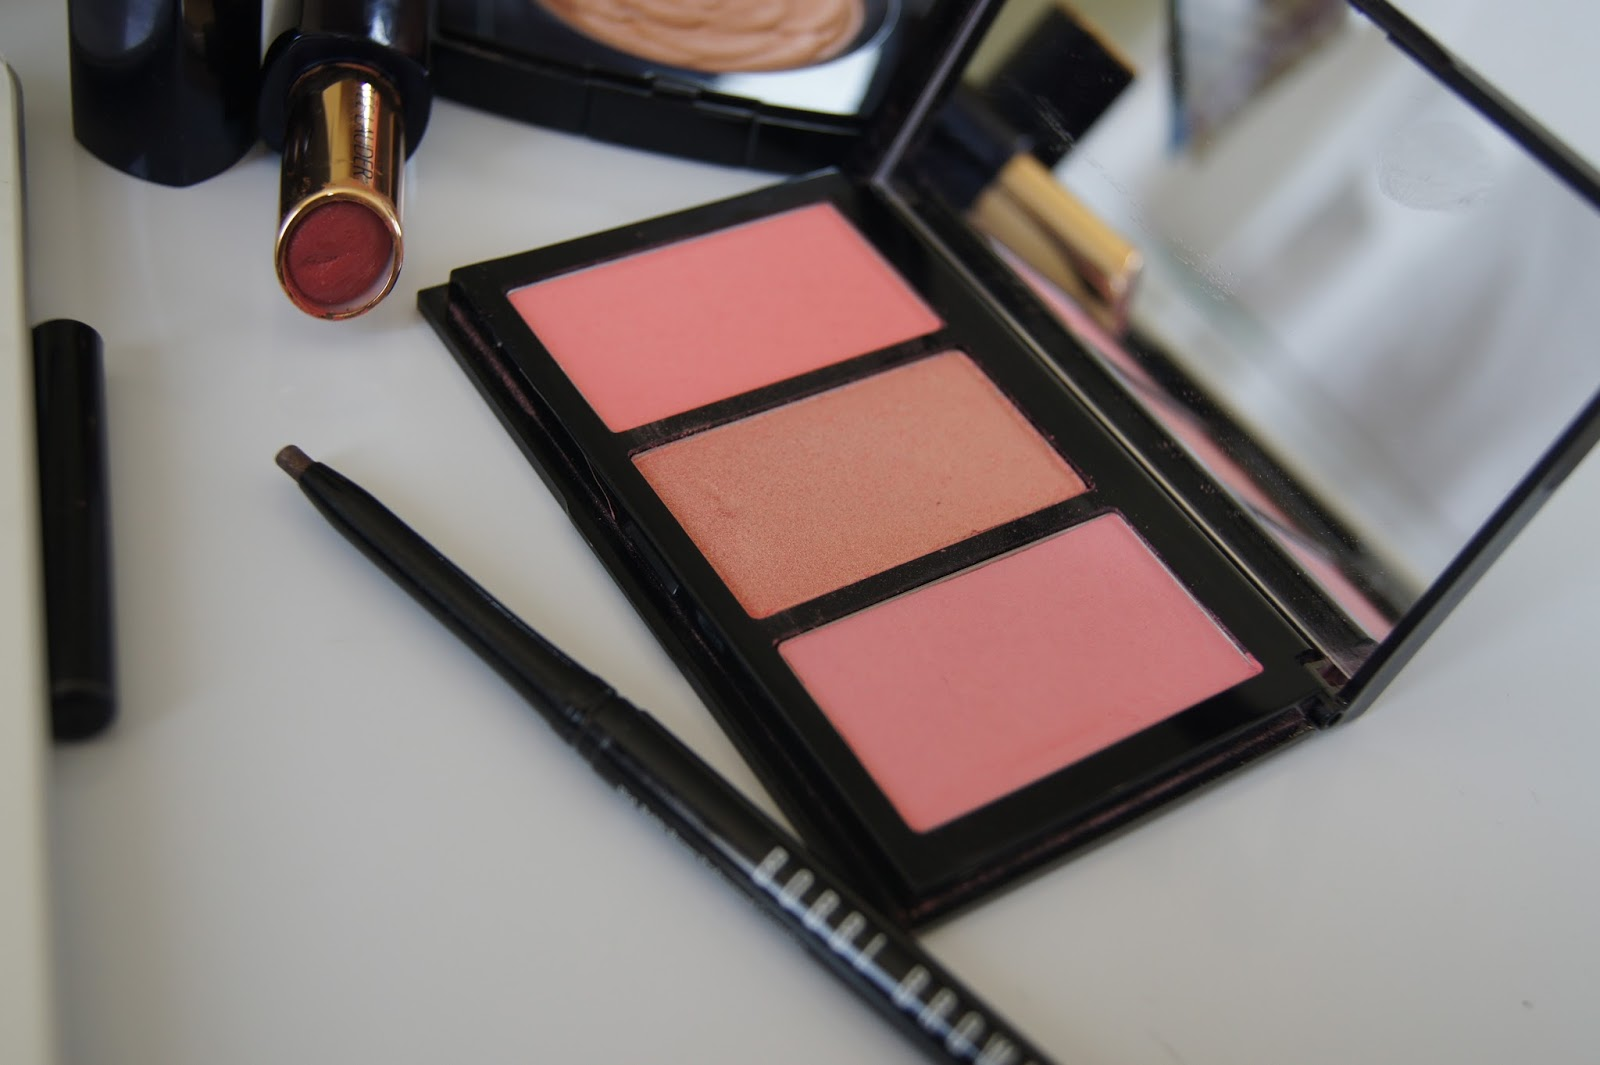 Bobbi Brown Calypso blush palette